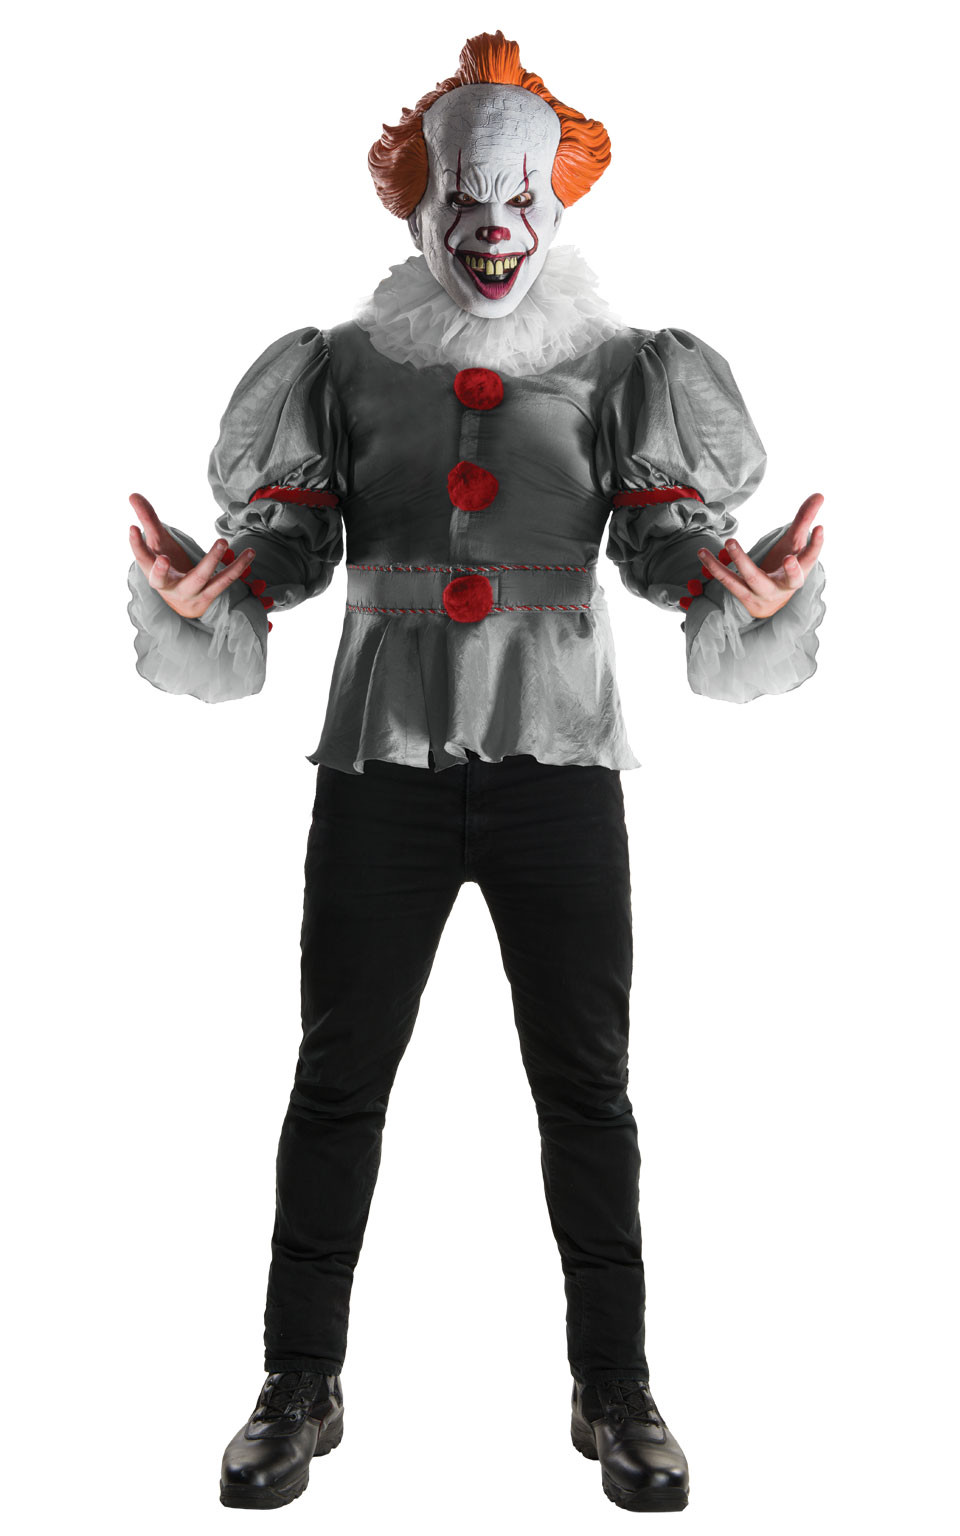 Rubieu0027s Official Stephen Kingu0027s IT Pennywise Deluxe Fancy Dress Clown Costume  sc 1 st  eBay & Rubieu0027s Official Stephen Kingu0027s IT Pennywise Deluxe Fancy Dress ...